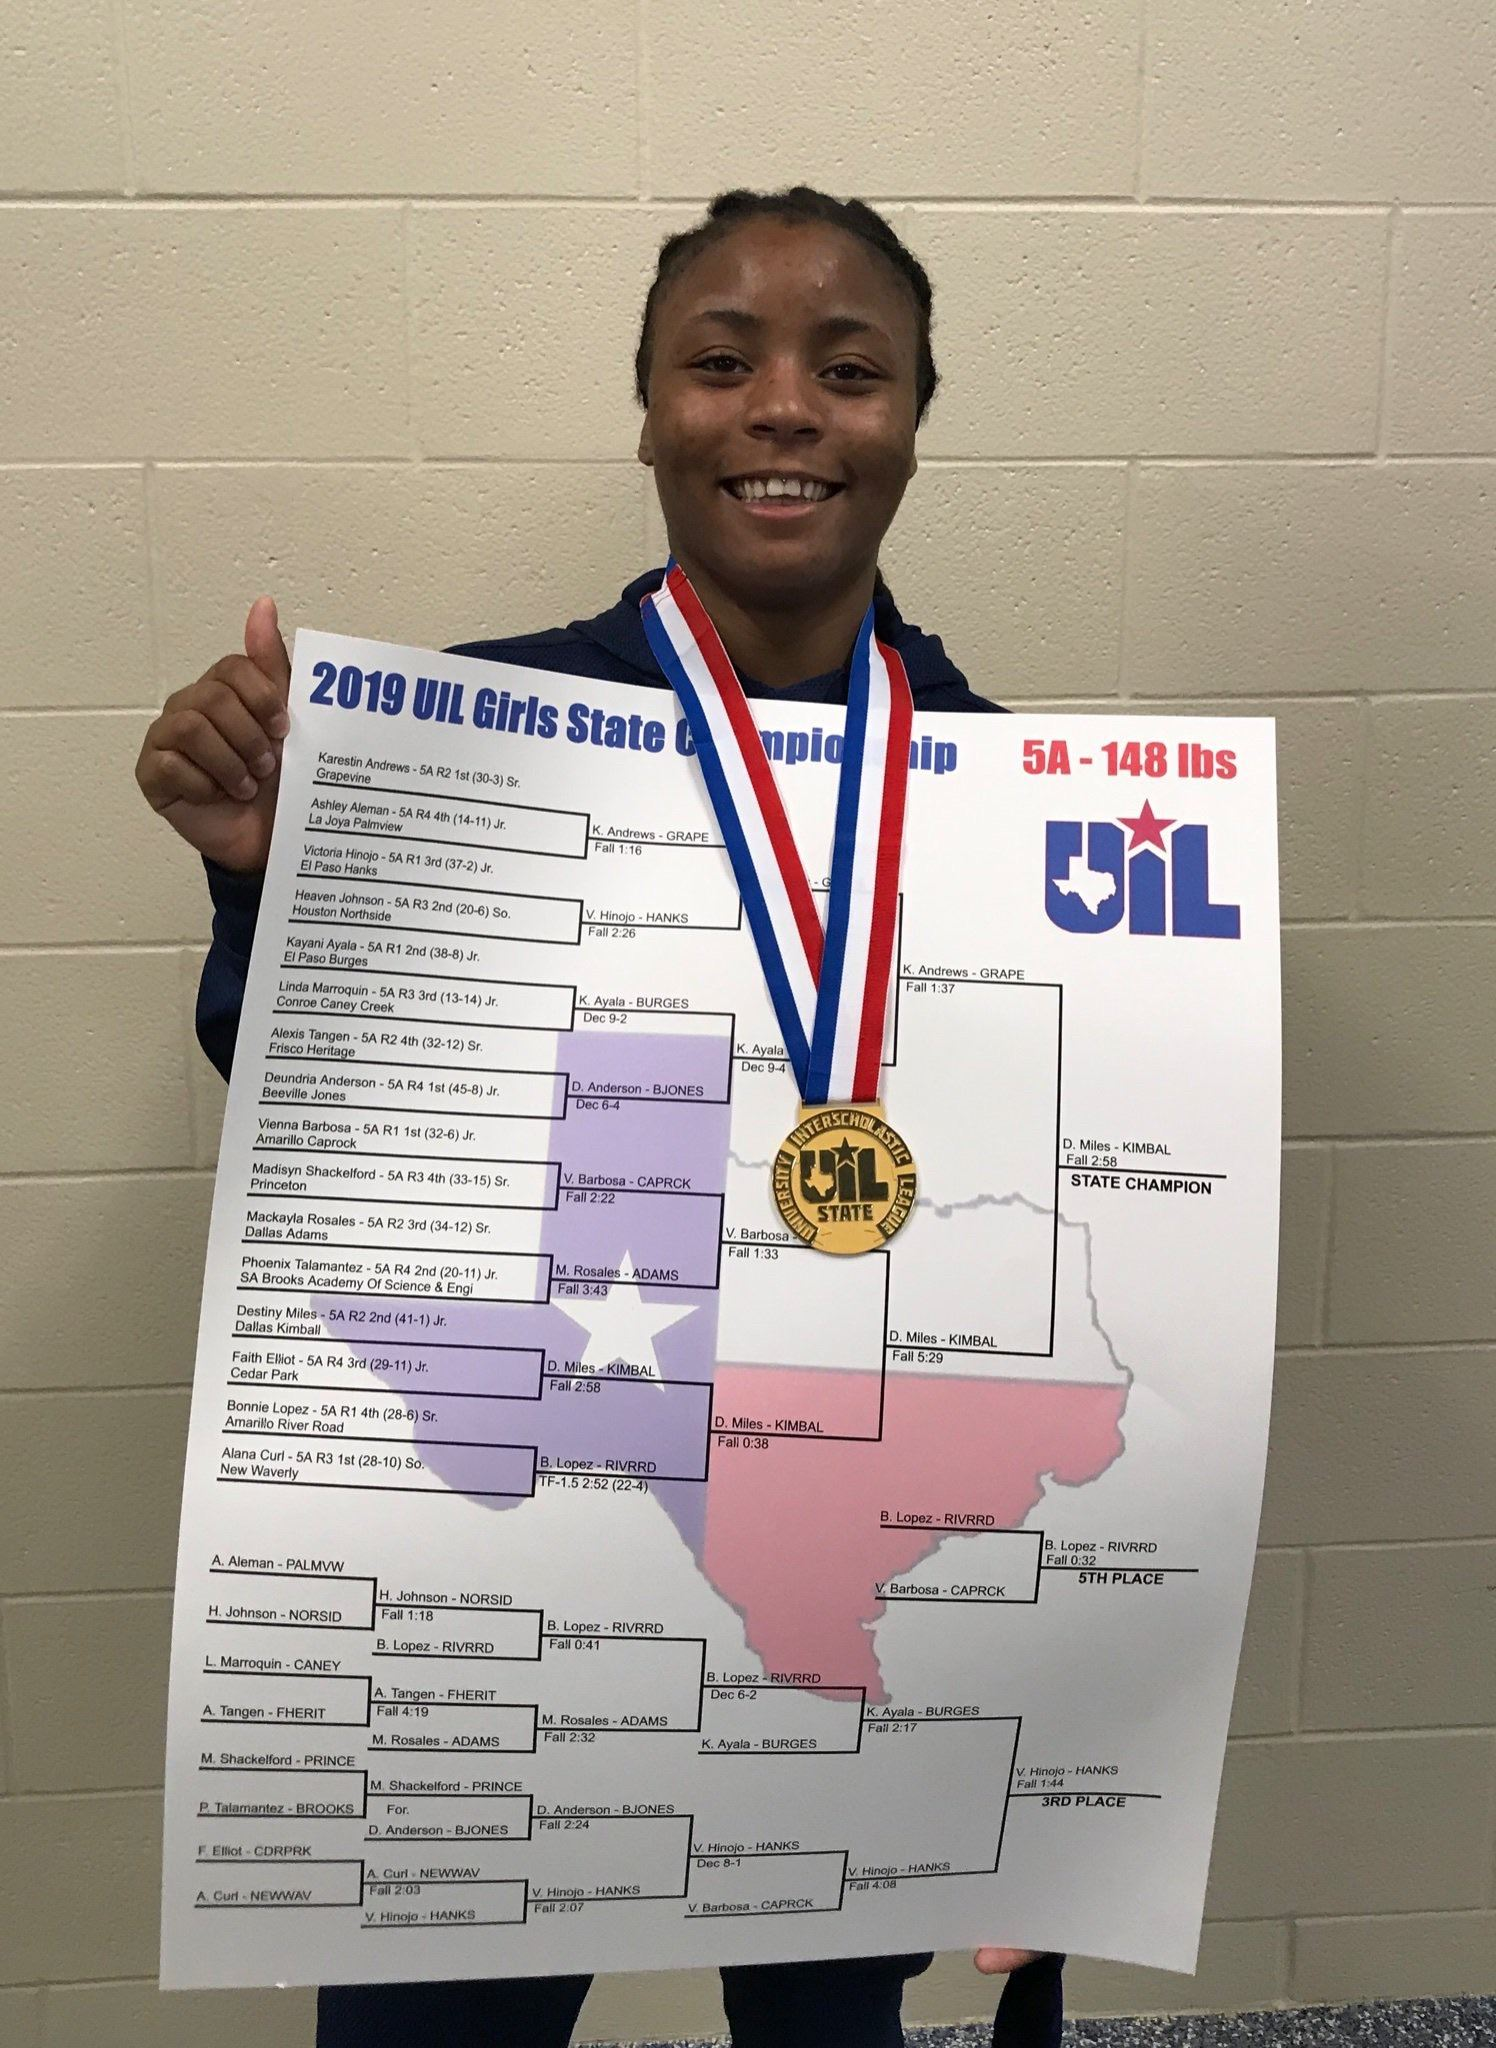 Destiny Miles, Kimball Wins 5A-148 Girls State Wrestling Championship